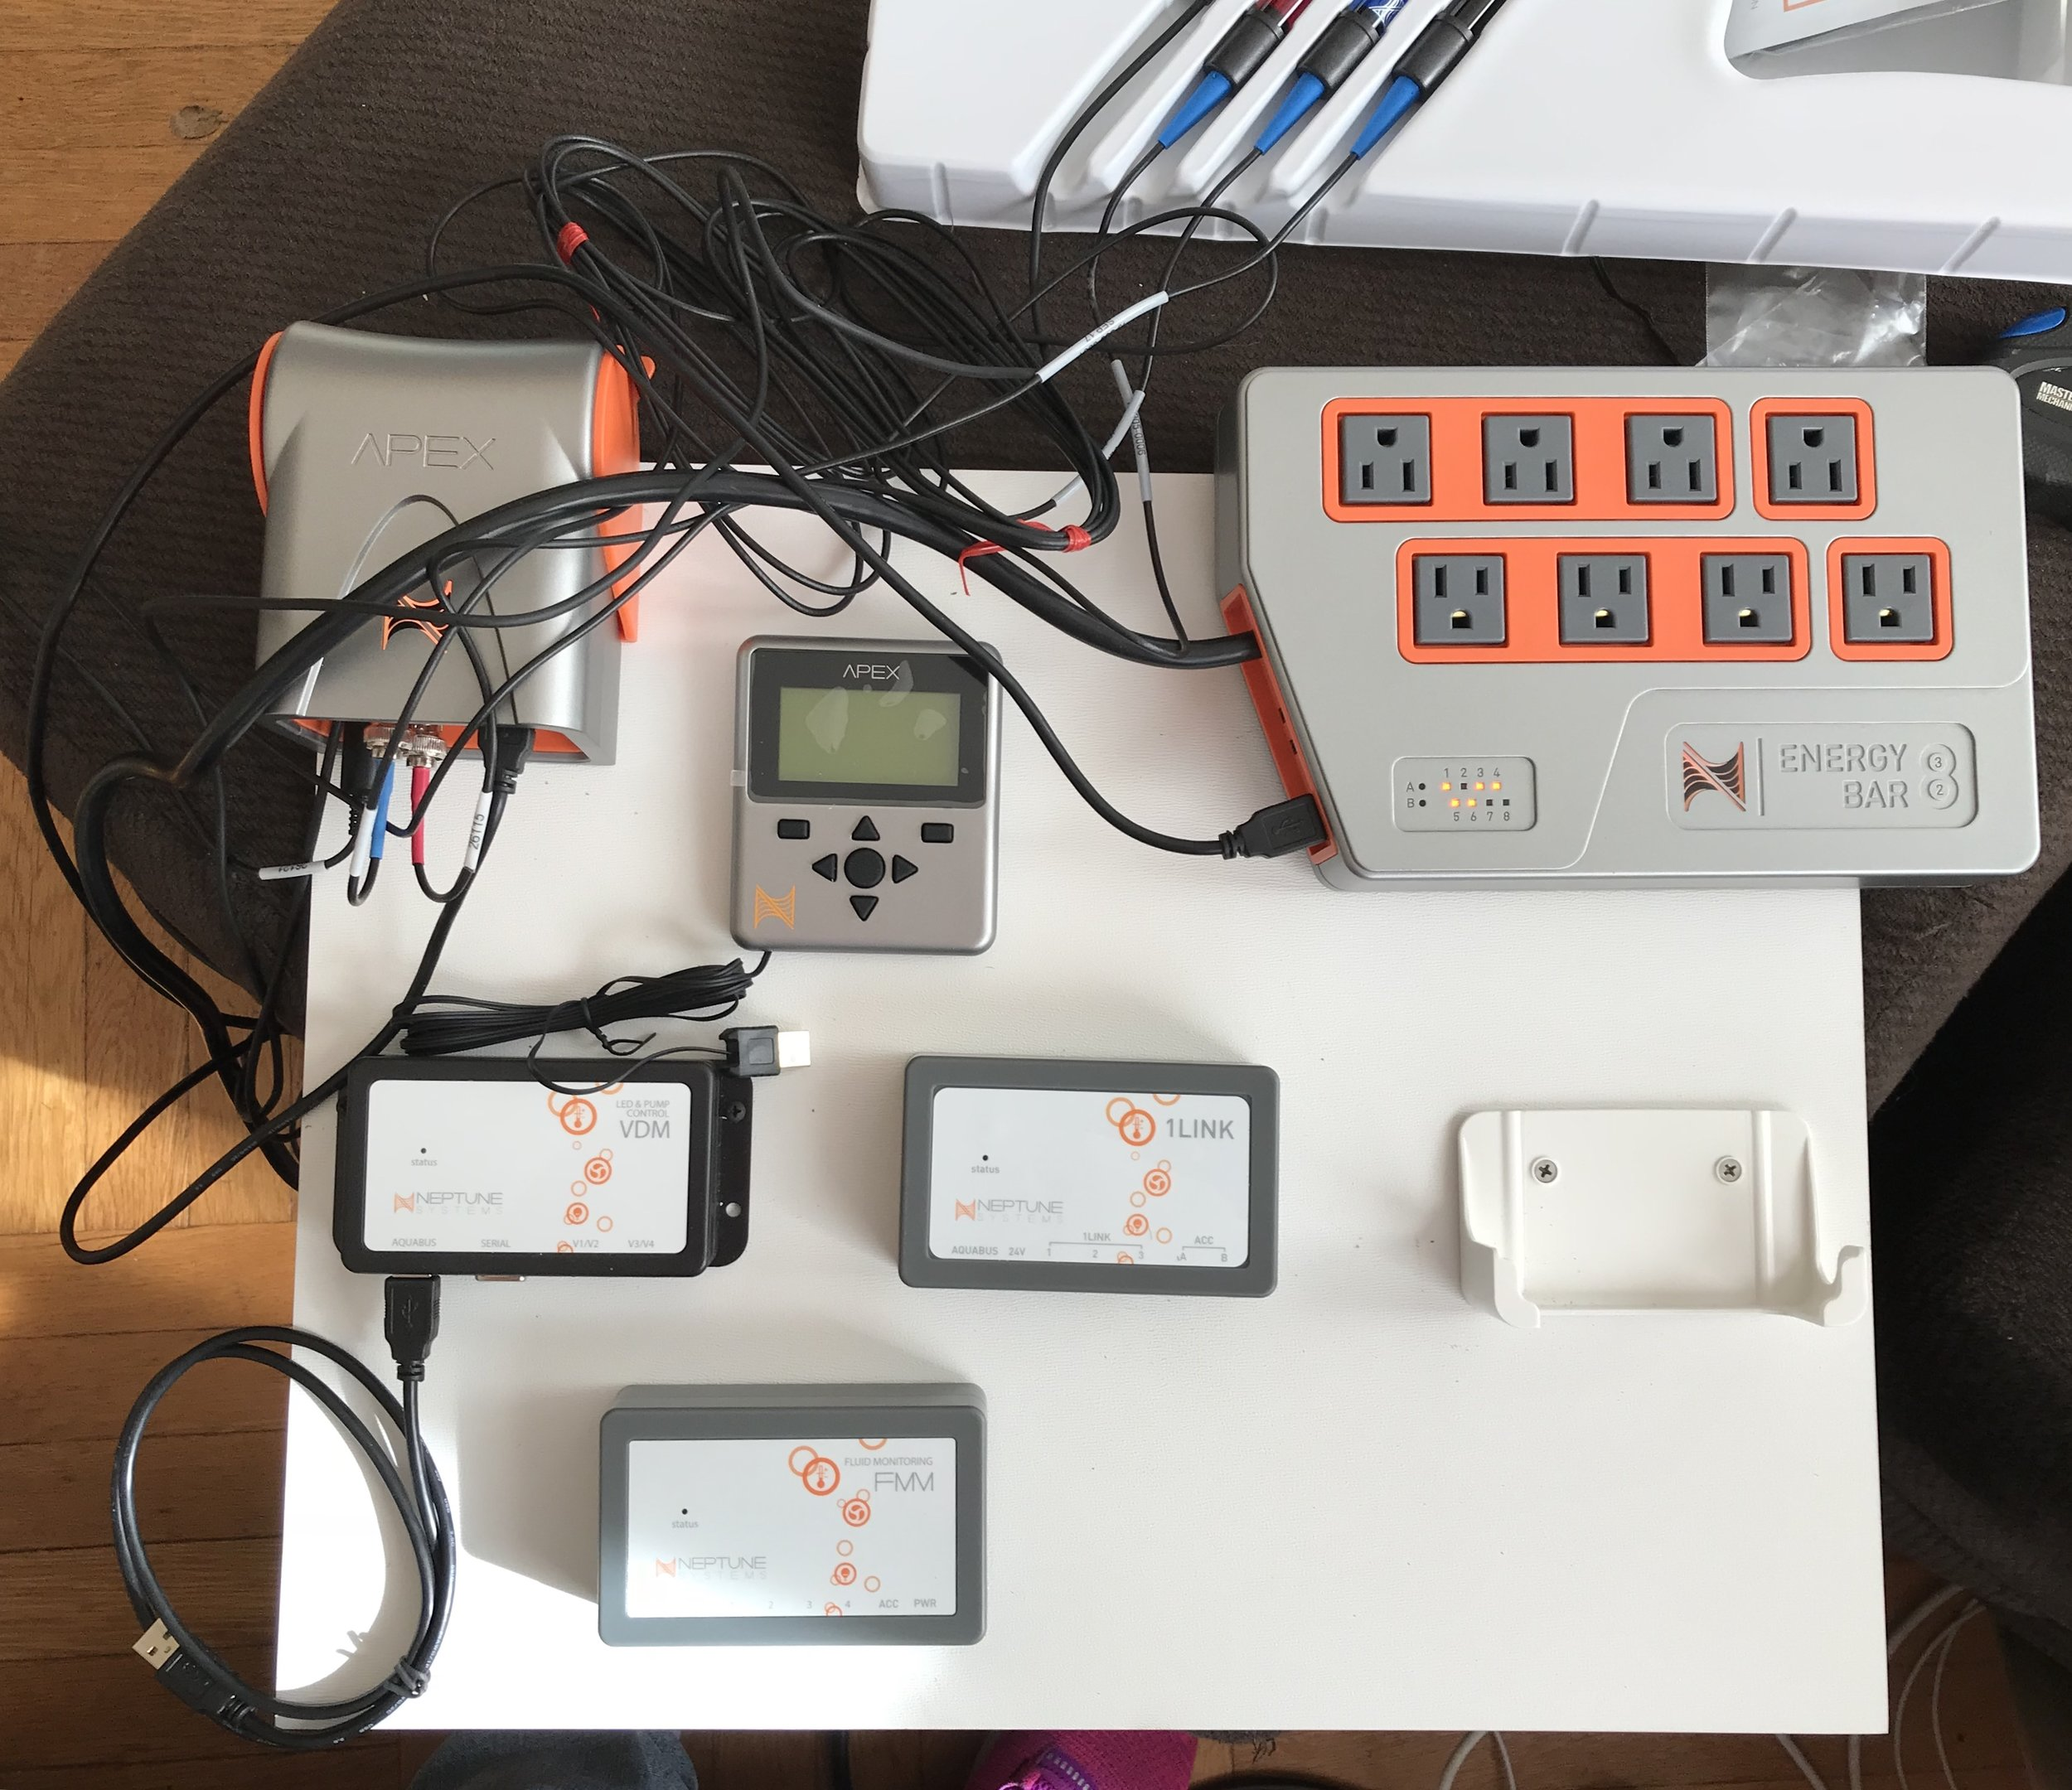 A photo from when I first was setting up the Apex controller and the components.